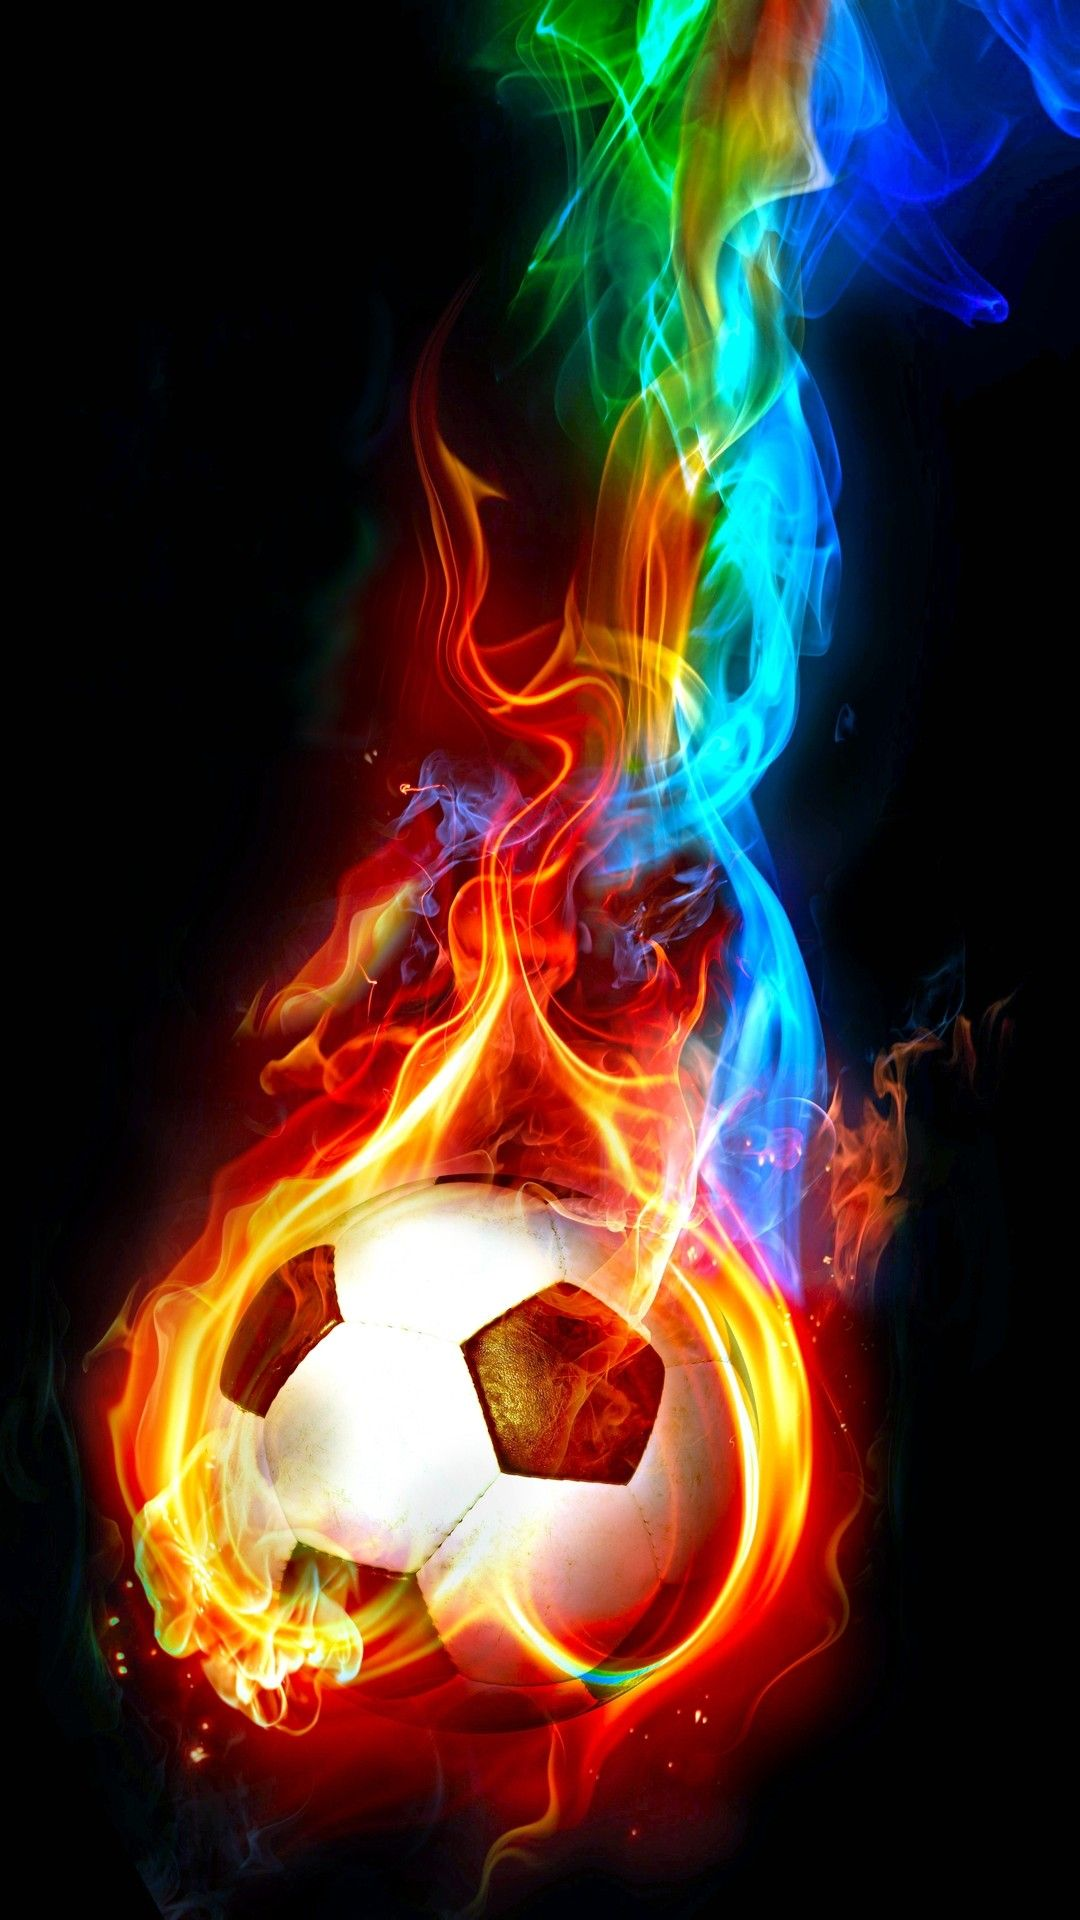 Cool Soccer Wallpapers For Iphone : soccer, wallpapers, iphone, Soccer, Wallpaper, Android, Football, Iphone,, Ball,